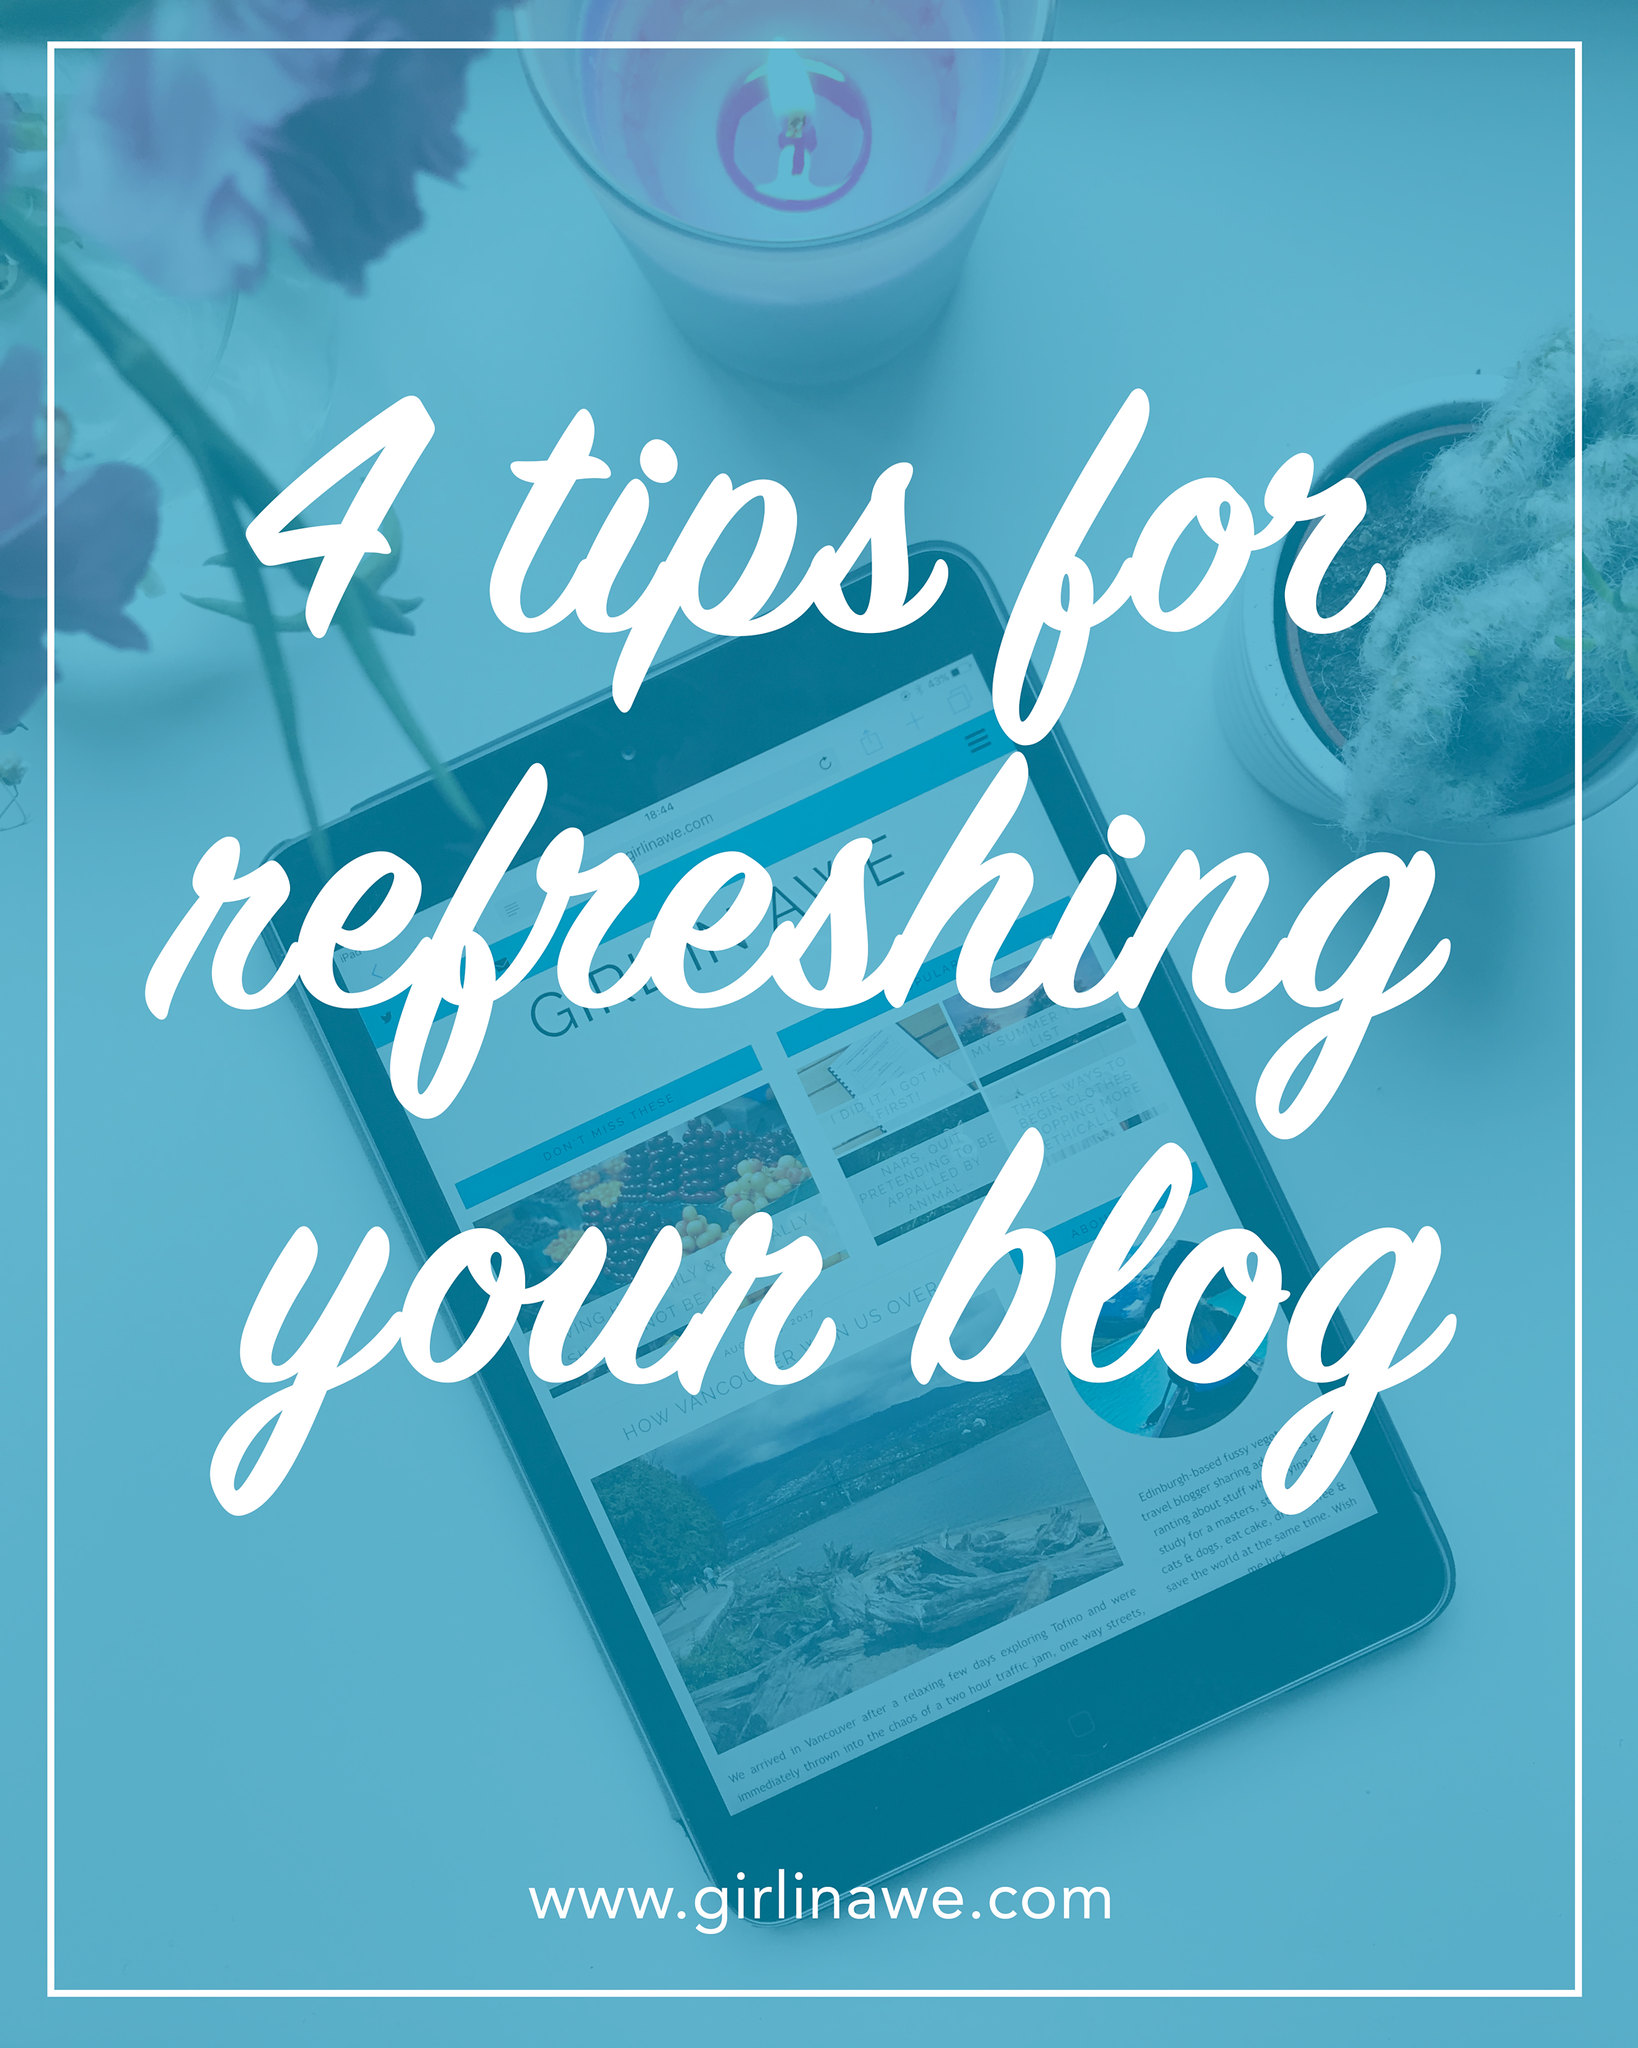 Four tips for refreshing and updating your blog